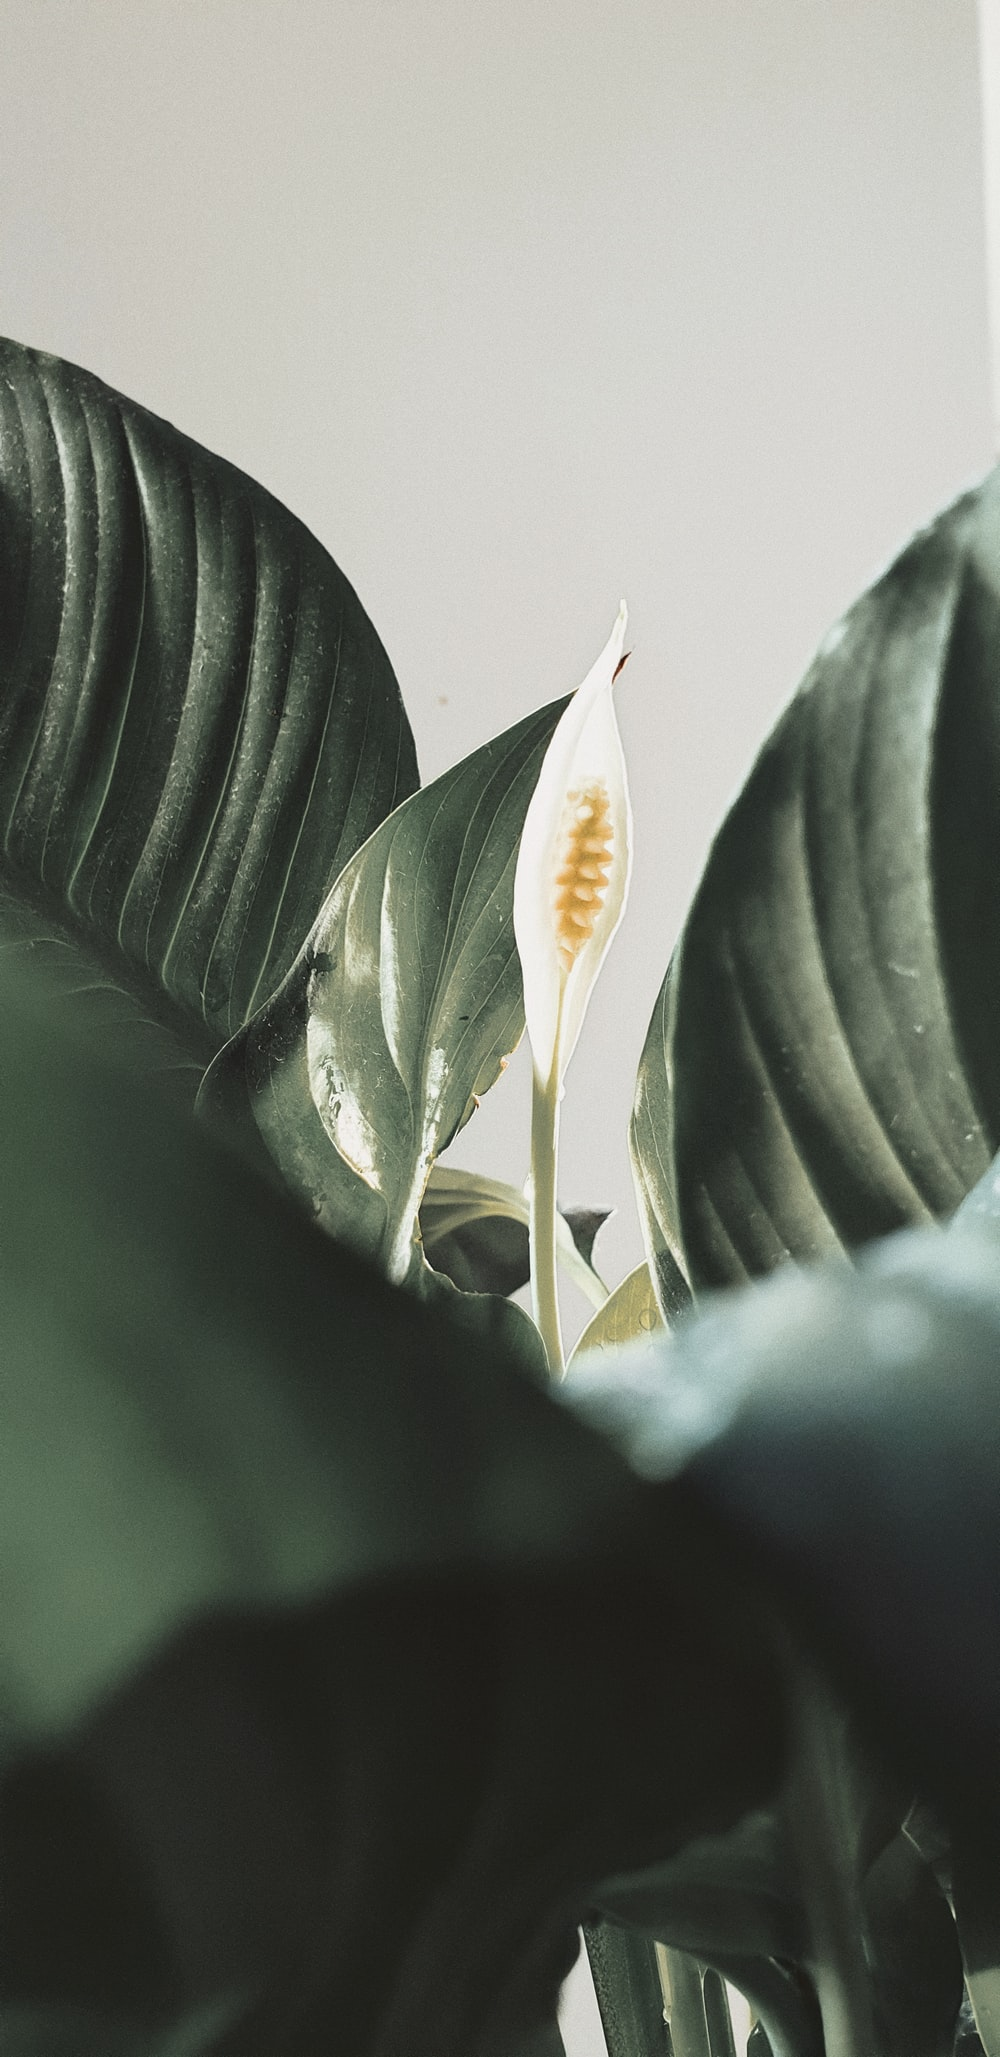 white flower bud in close up photography